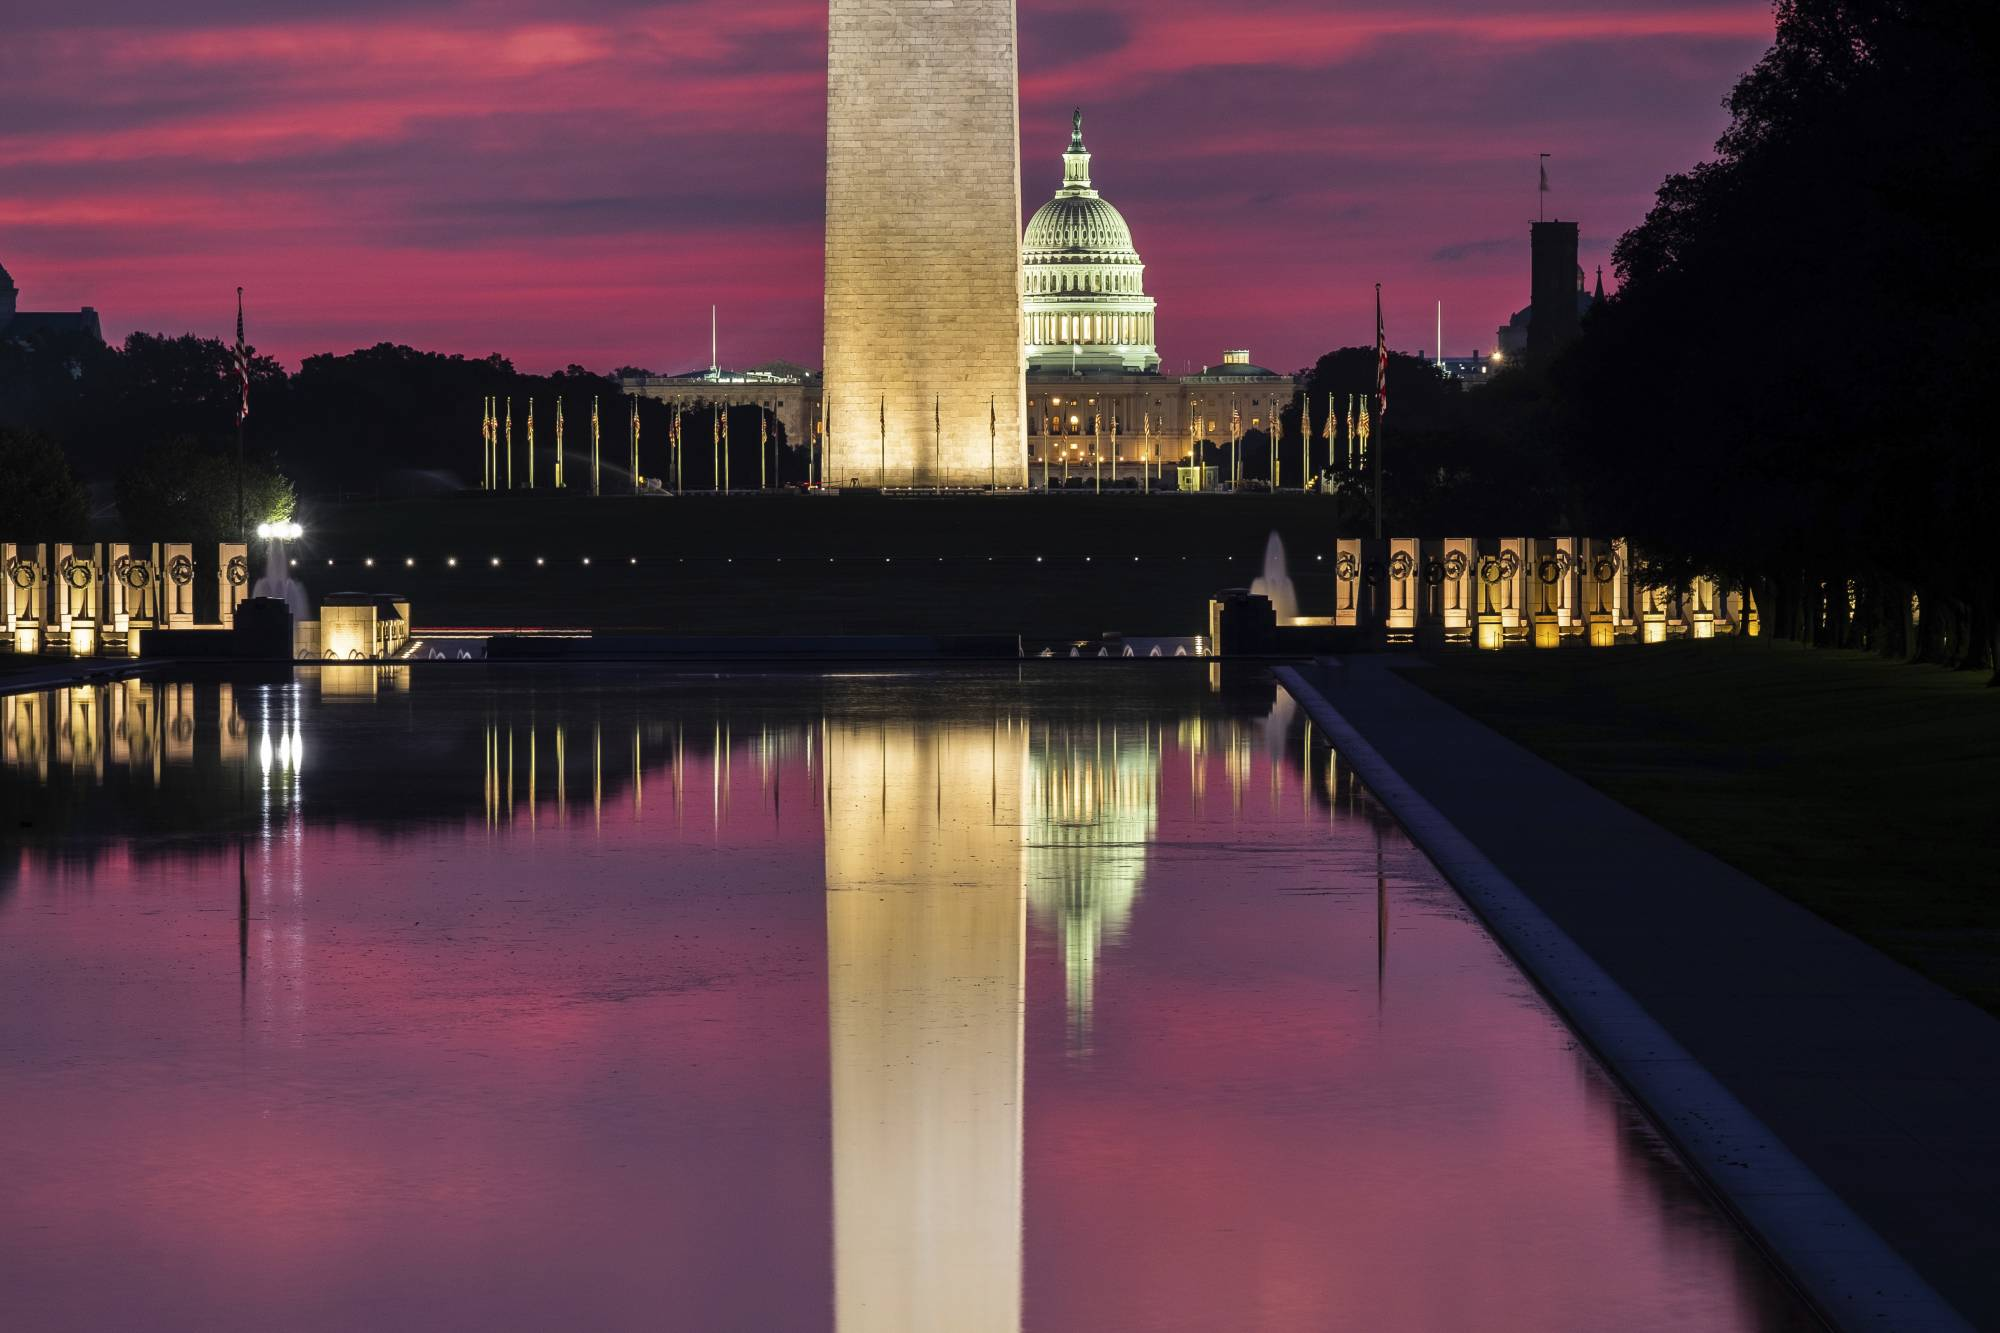 The U.S. Capitol and the base of the Washington Monument are mirrored in the reflecting pool on the National Mall at sunrise in Washington, Saturday, Aug. 25, 2018. (AP Photo/J. David Ake)